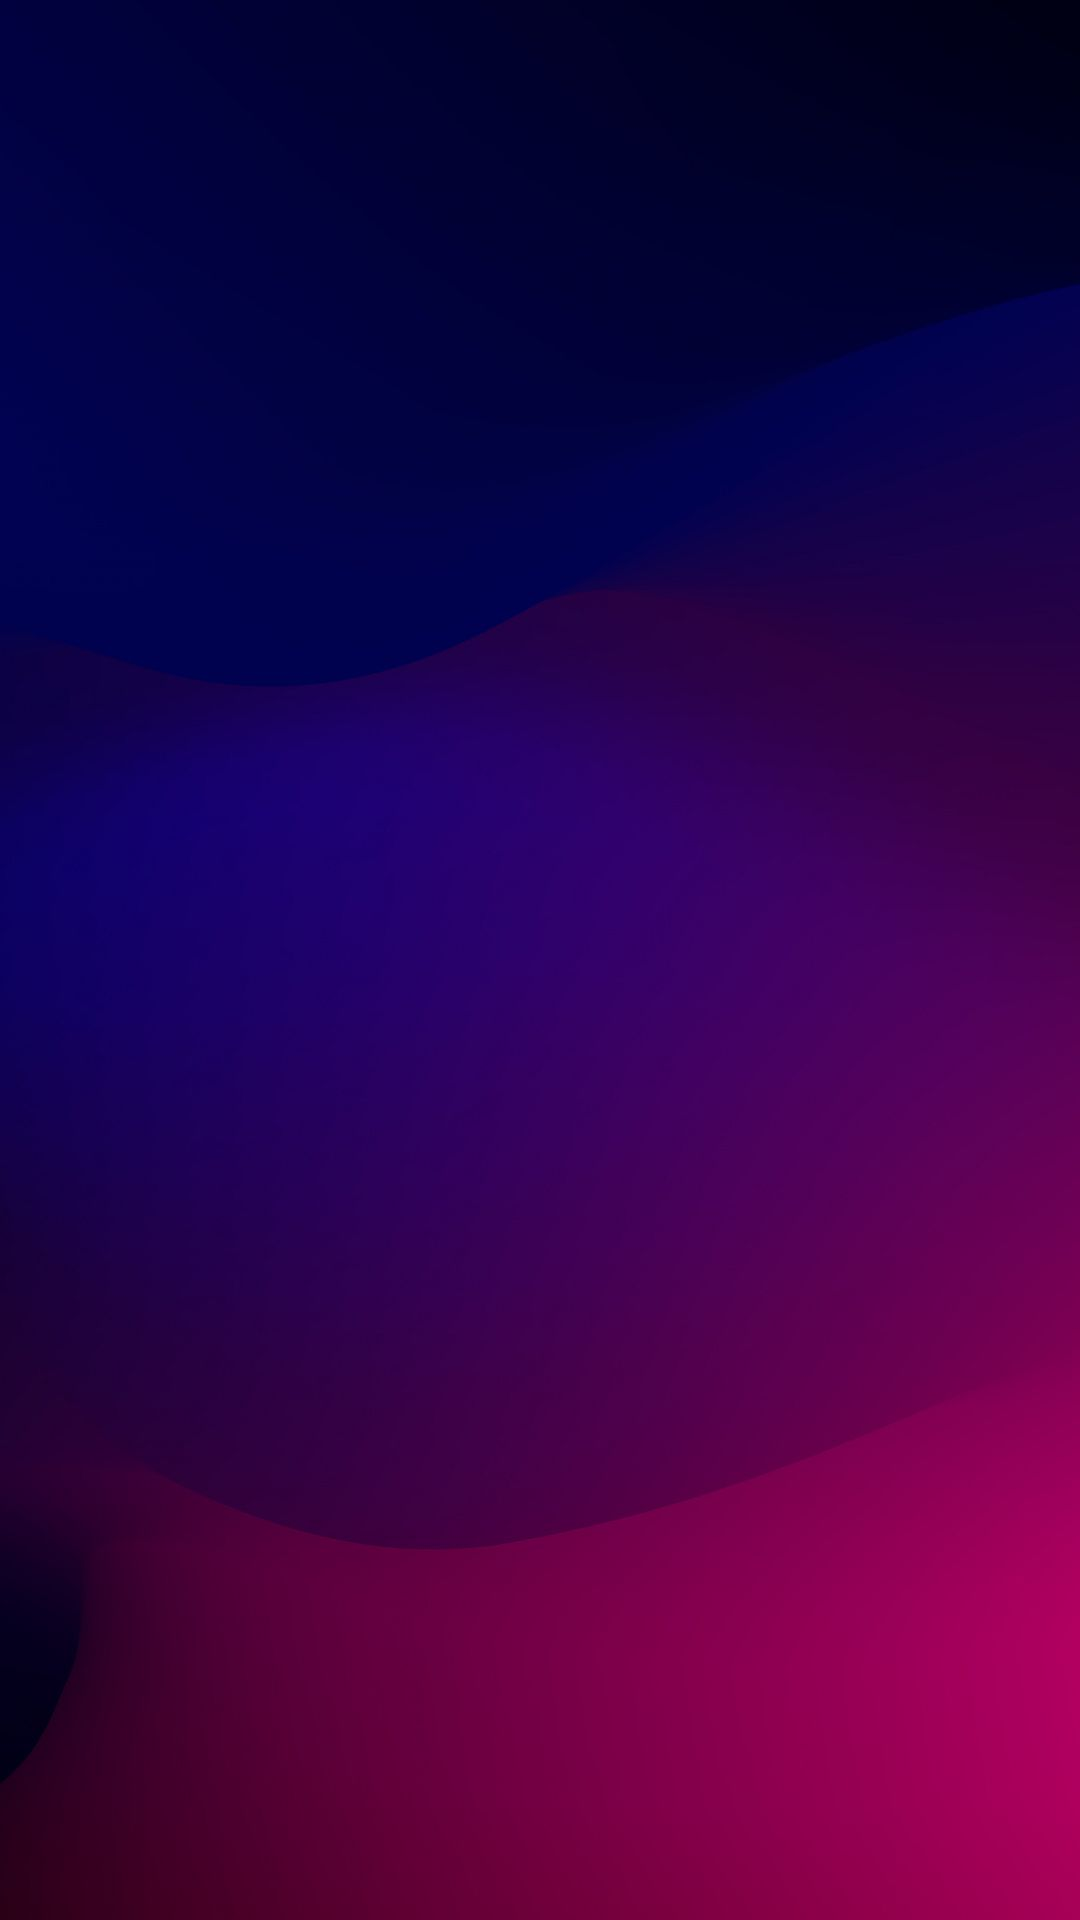 Dark Abstract Simple Colors Blur 1080x1920 Wallpaper Black And Purple Wallpaper Android Wallpaper Purple Wallpaper